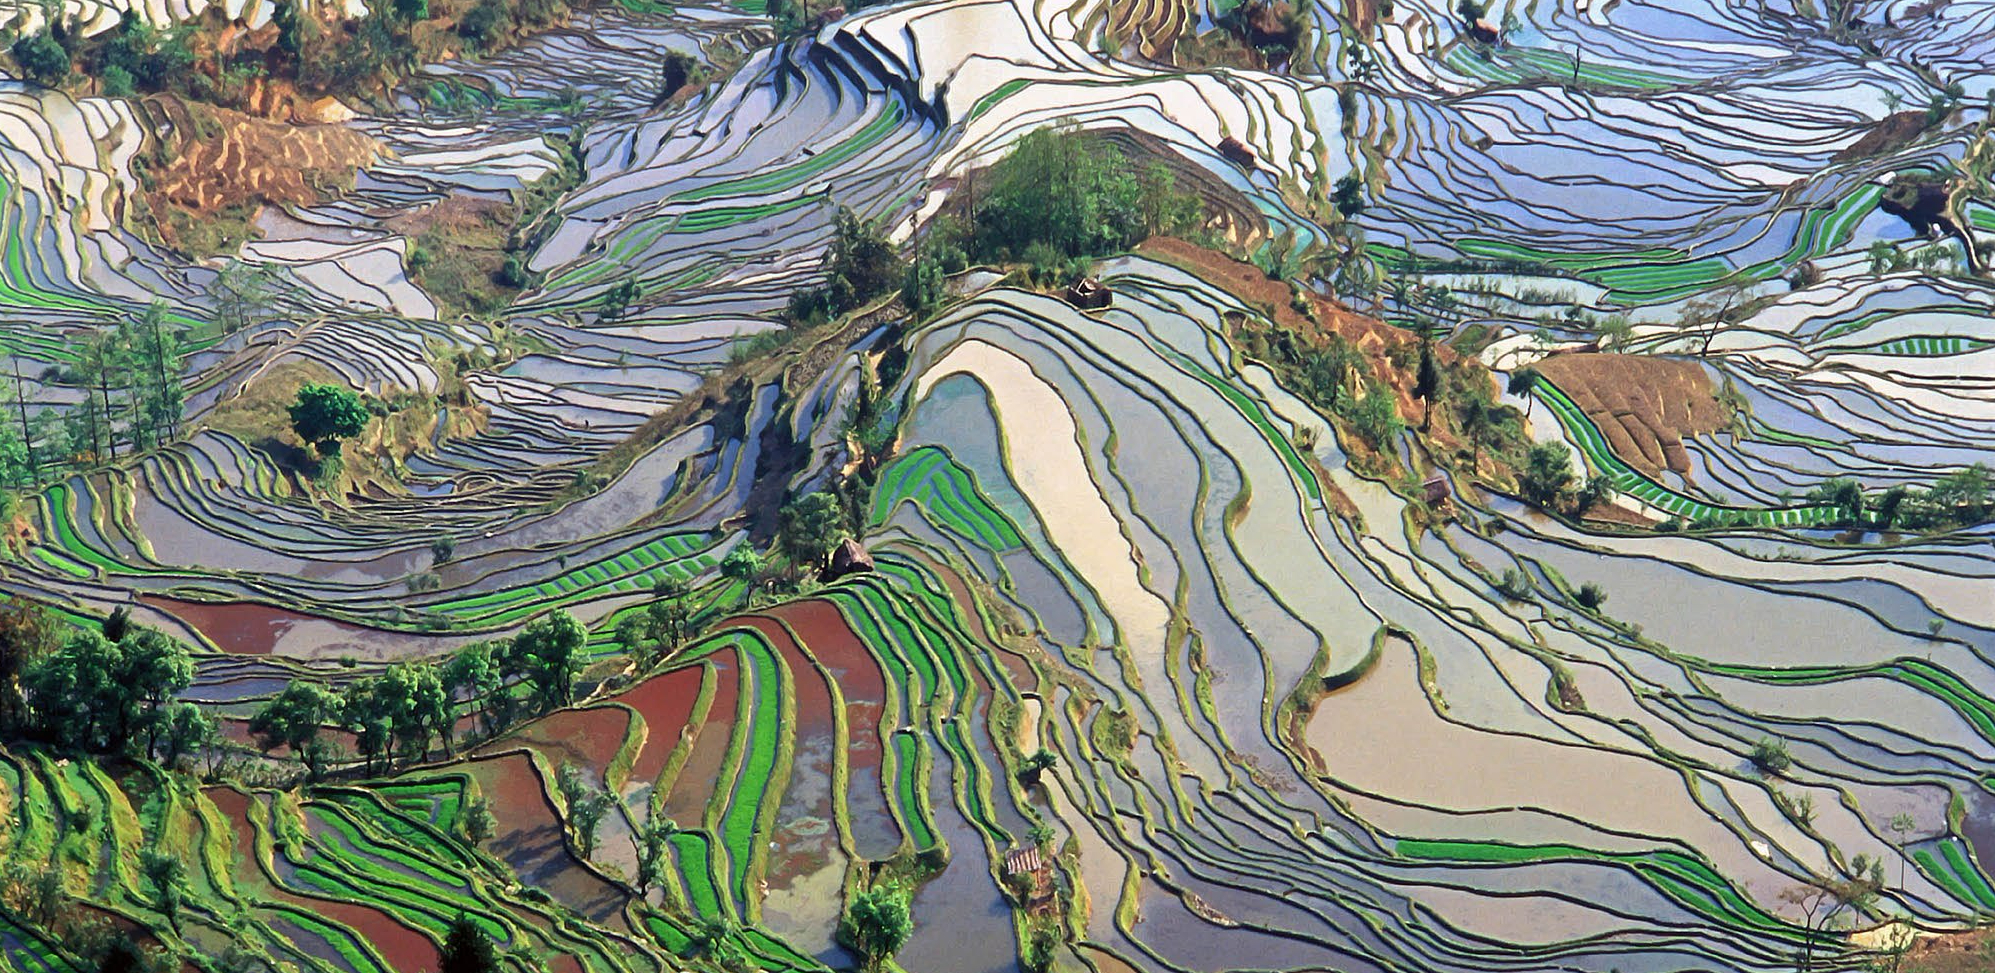 terrace_field_yunnan_china_denoised.jpg